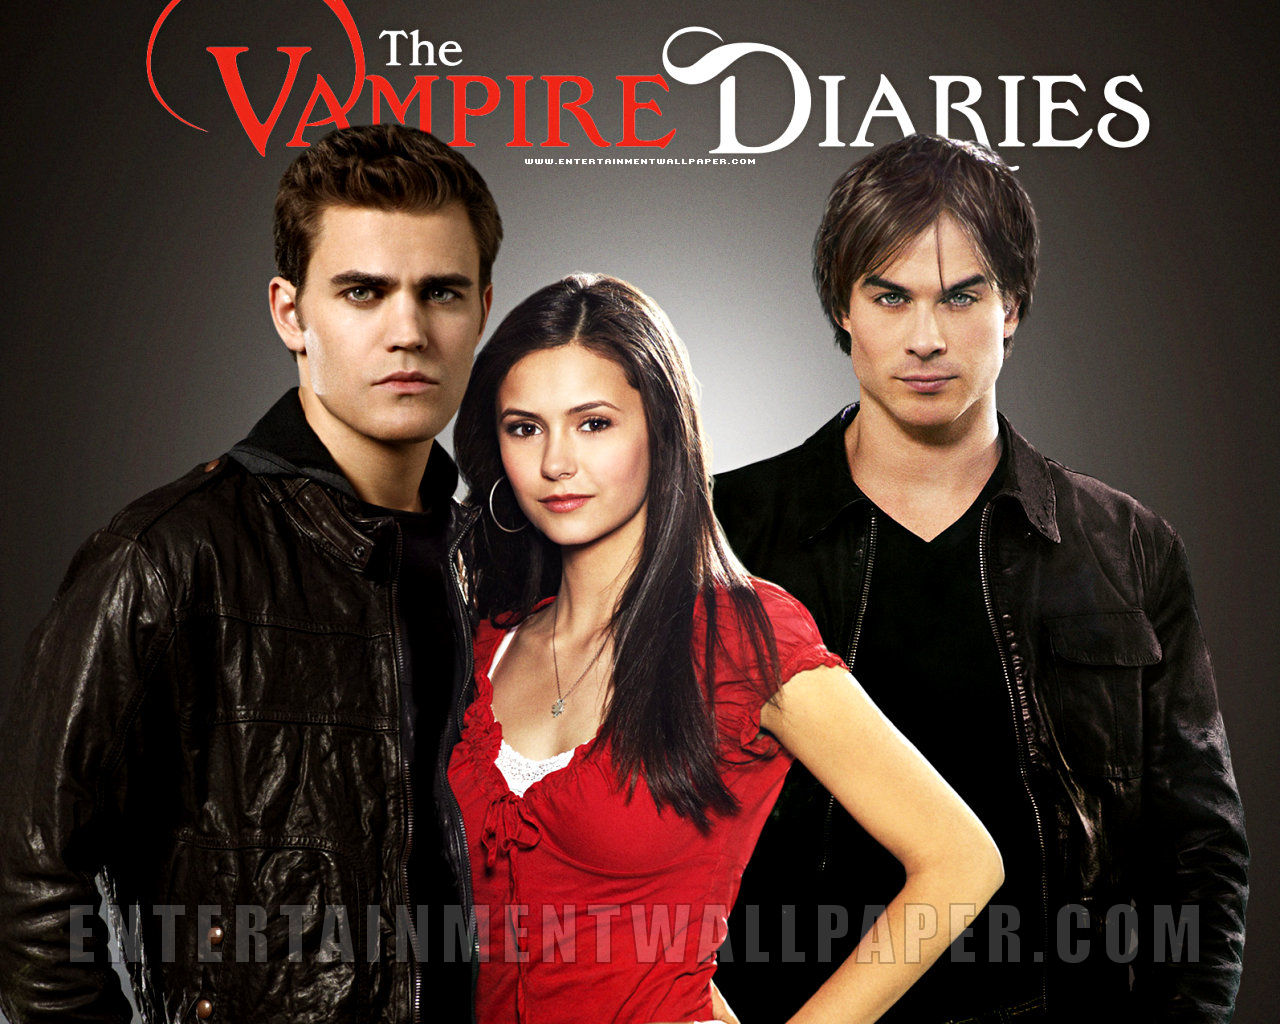 DD-ified : DDfying You.: The Vampire Diaries